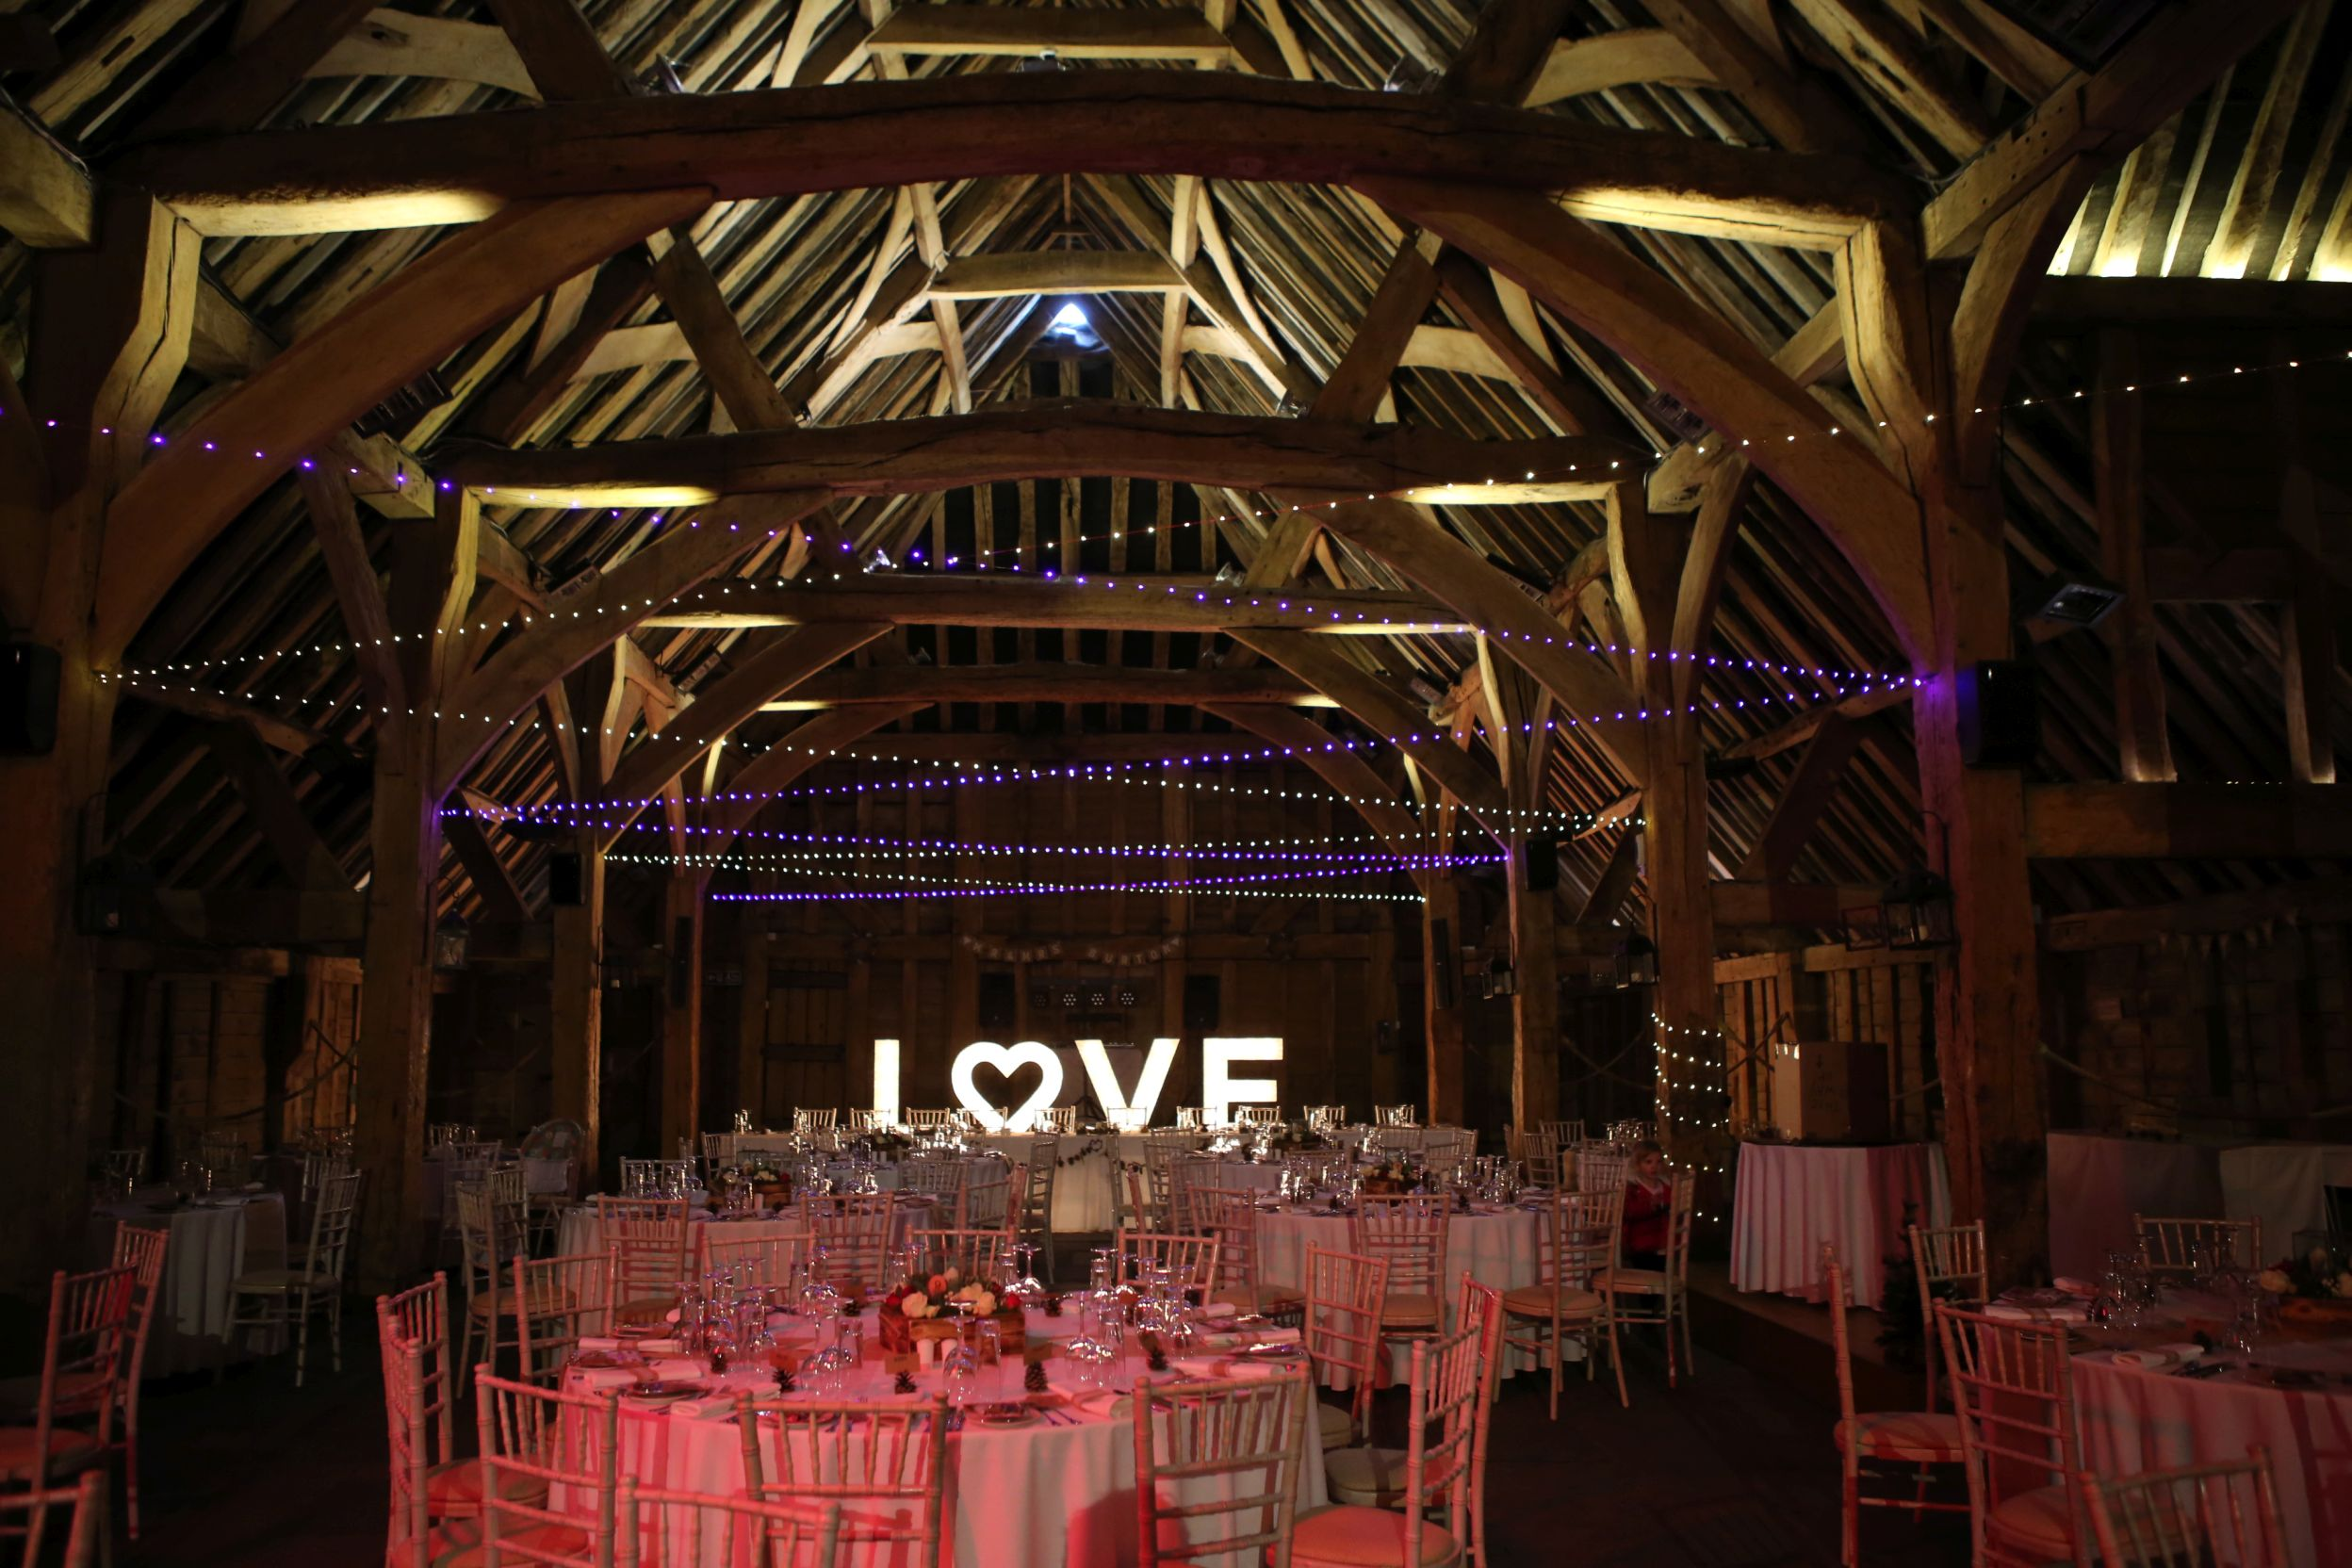 Our lovely floating light canopy at The Priory Barn